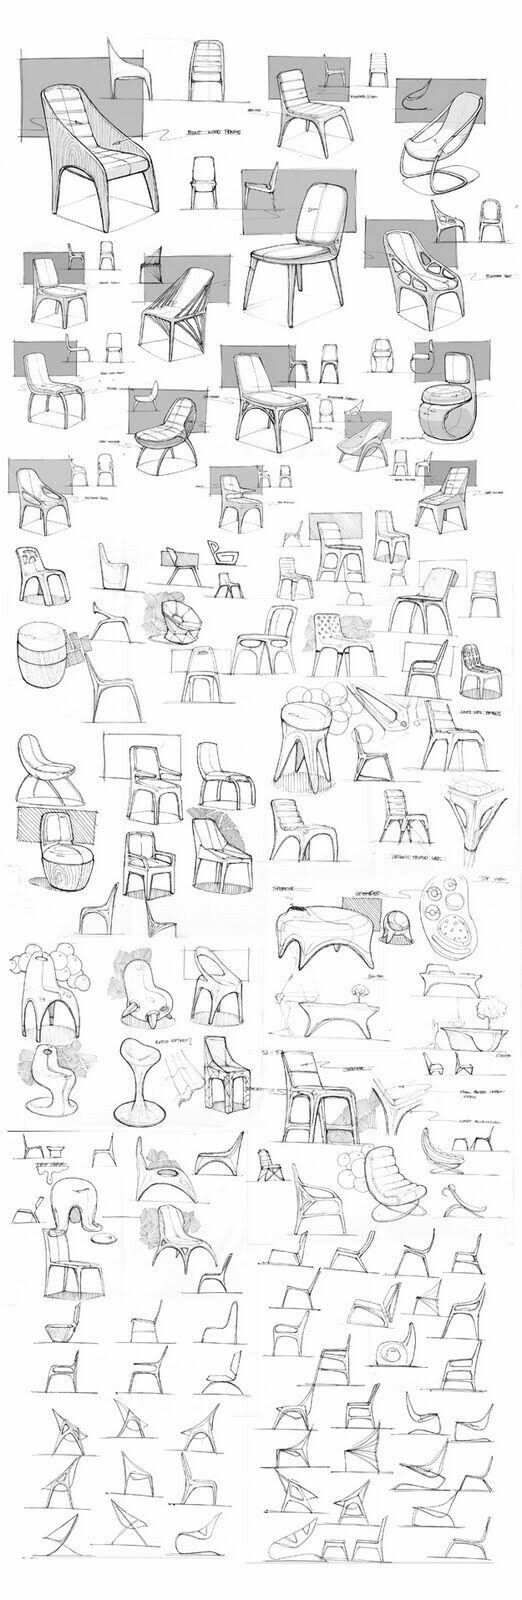 Drawings   Art FurnitureFurniture DesignProduct. Pin by Wd0x on scetch   Pinterest   Sketches  Industrial and Drawings